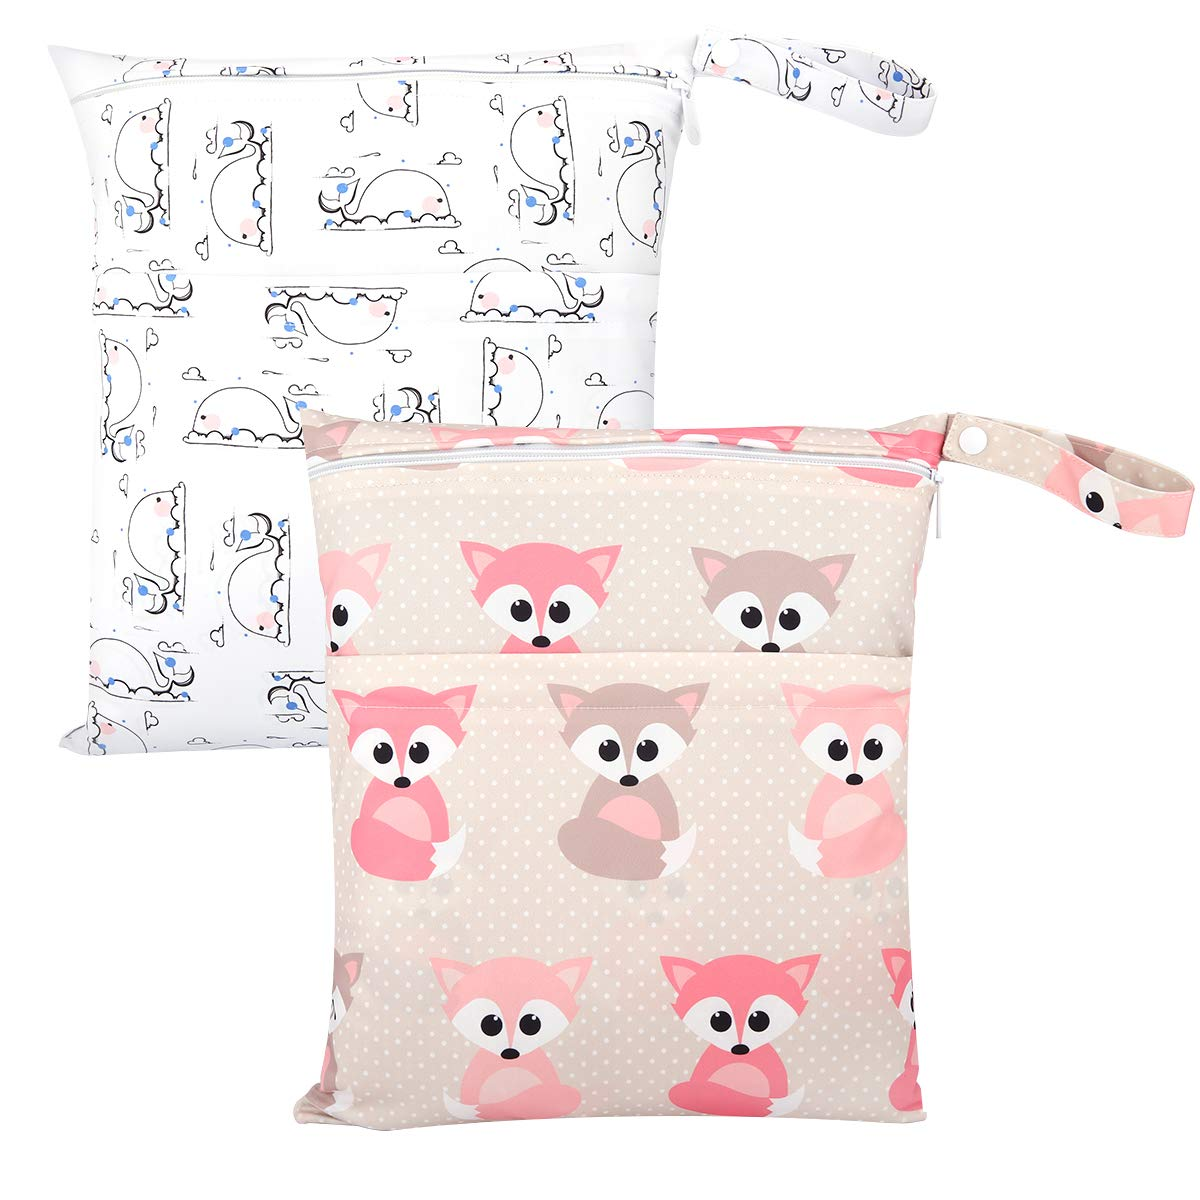 Zooawa Wet Dry Bag 2 Pack Waterproof Reusable Portable Cloth Diapers Wet Bag With Double Zippered Pockets Carrying Storage Travel Bag Organizer for Baby Infants Giraffe Alphabet Animals